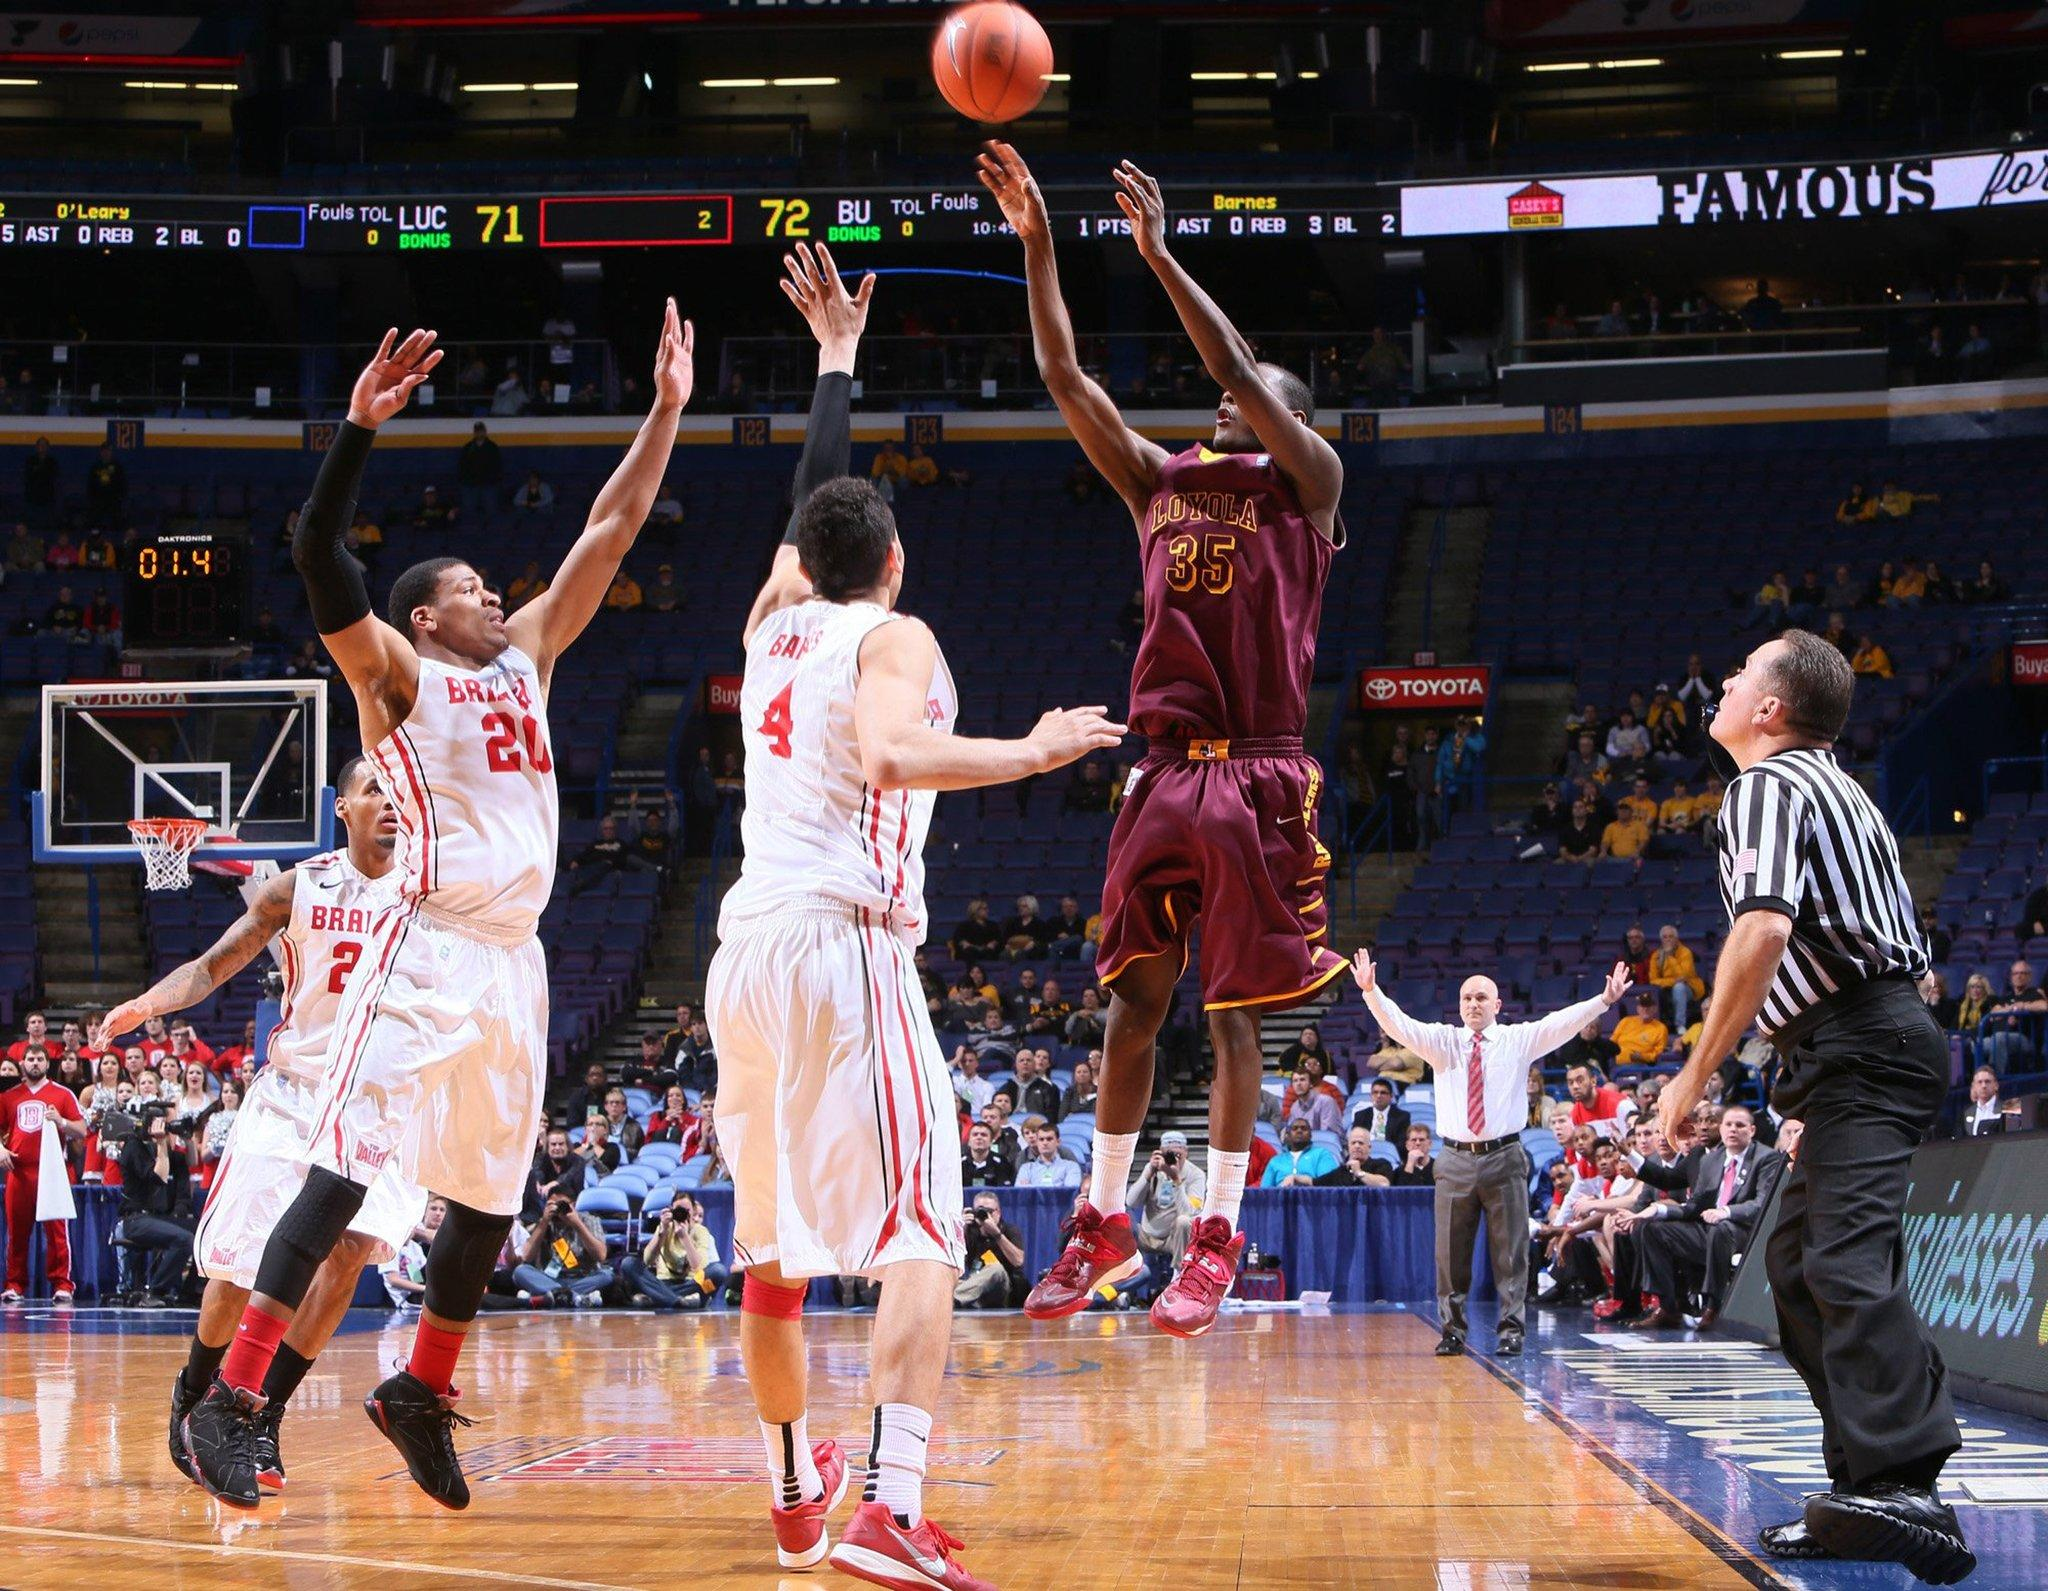 Loyola's Milton Doyle hits the game-winning 3-point shot with 1.4 seconds remaining against Bradley during the first round of the Missouri Valley tournament.